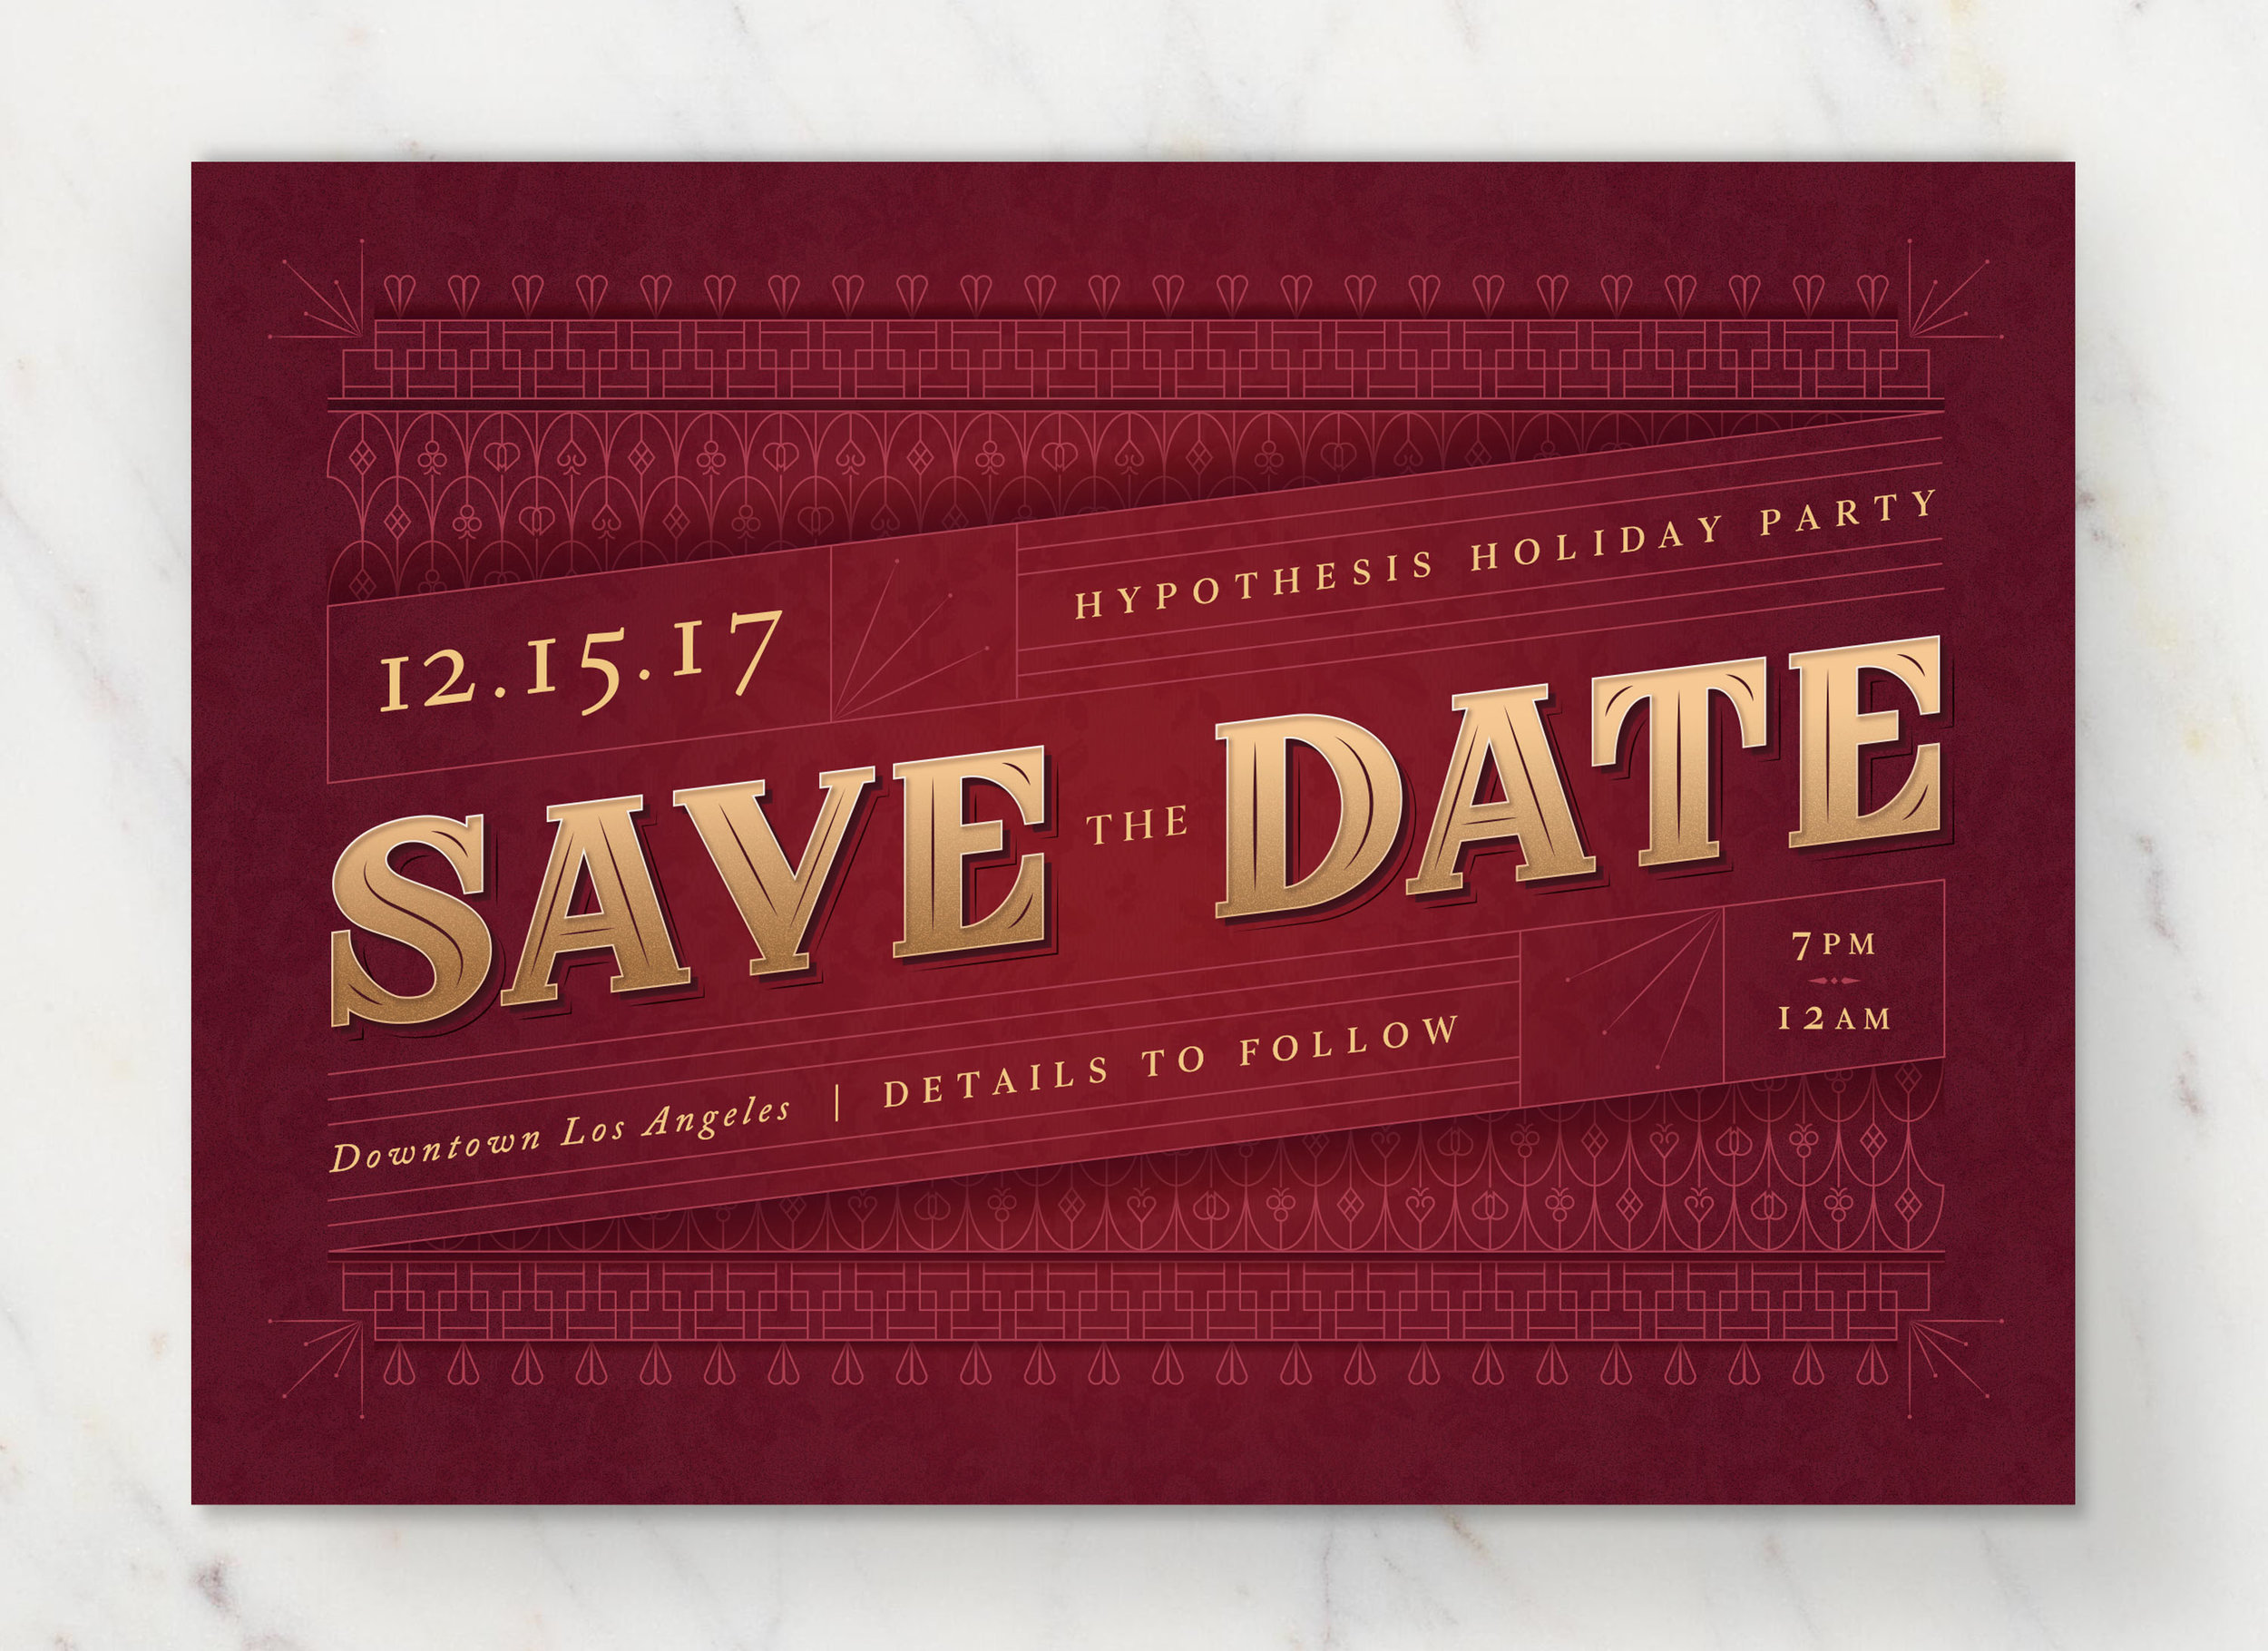 Save_the_Date.jpg